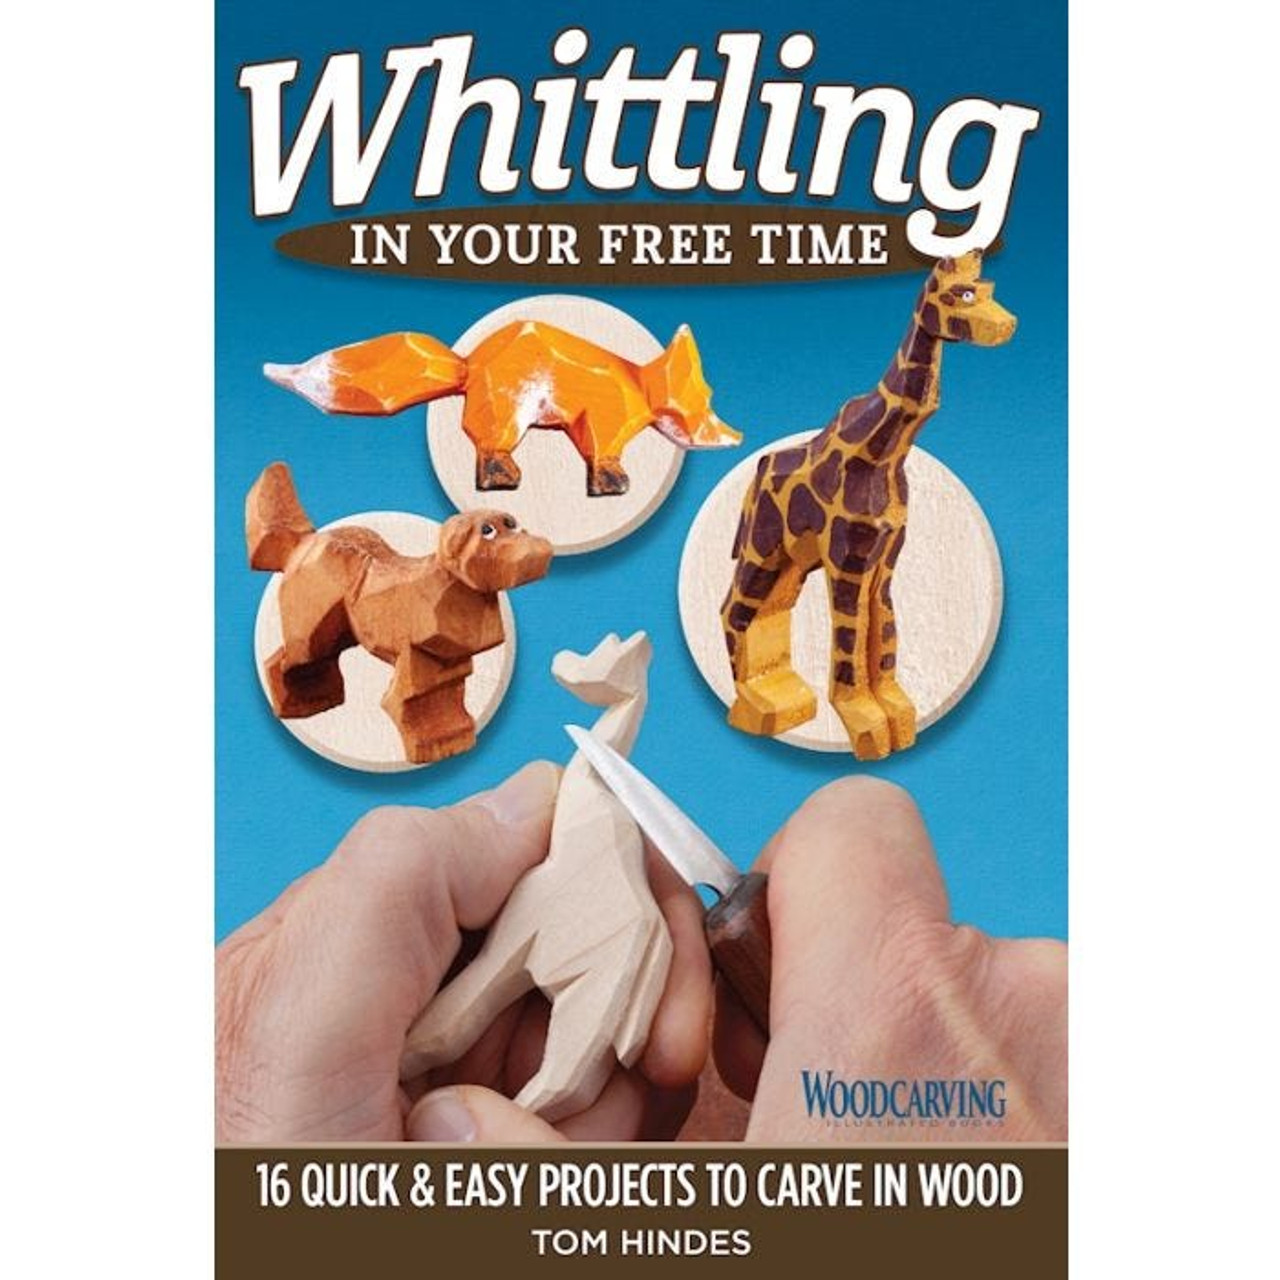 Whittling in Your Free Time has fun and easy whittling projects.